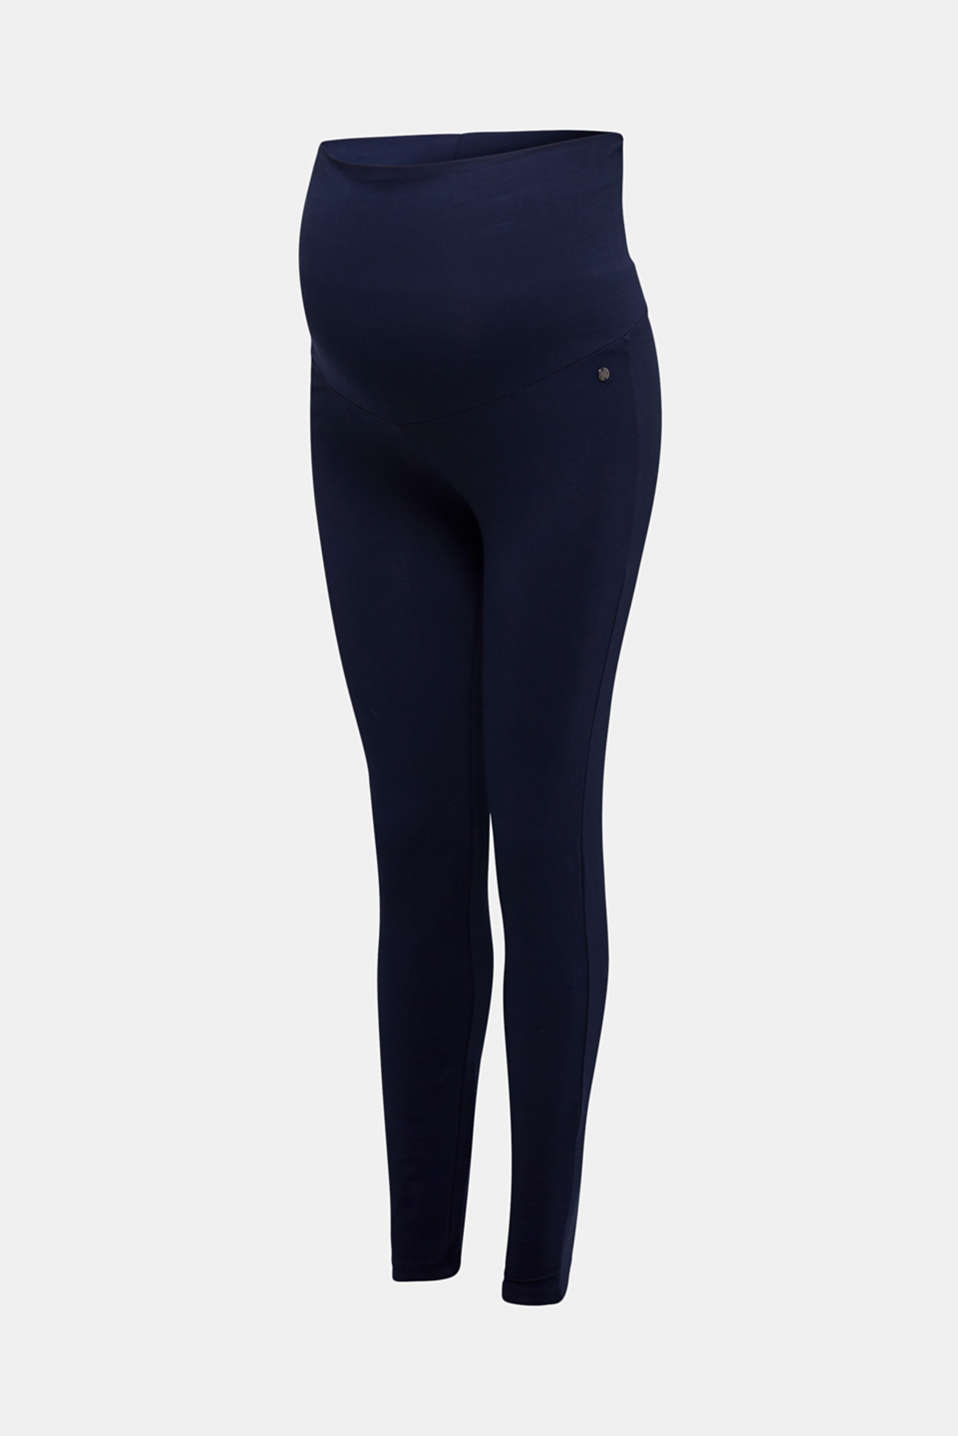 Leggings with an over-bump waistband, LCNIGHT BLUE, detail image number 2